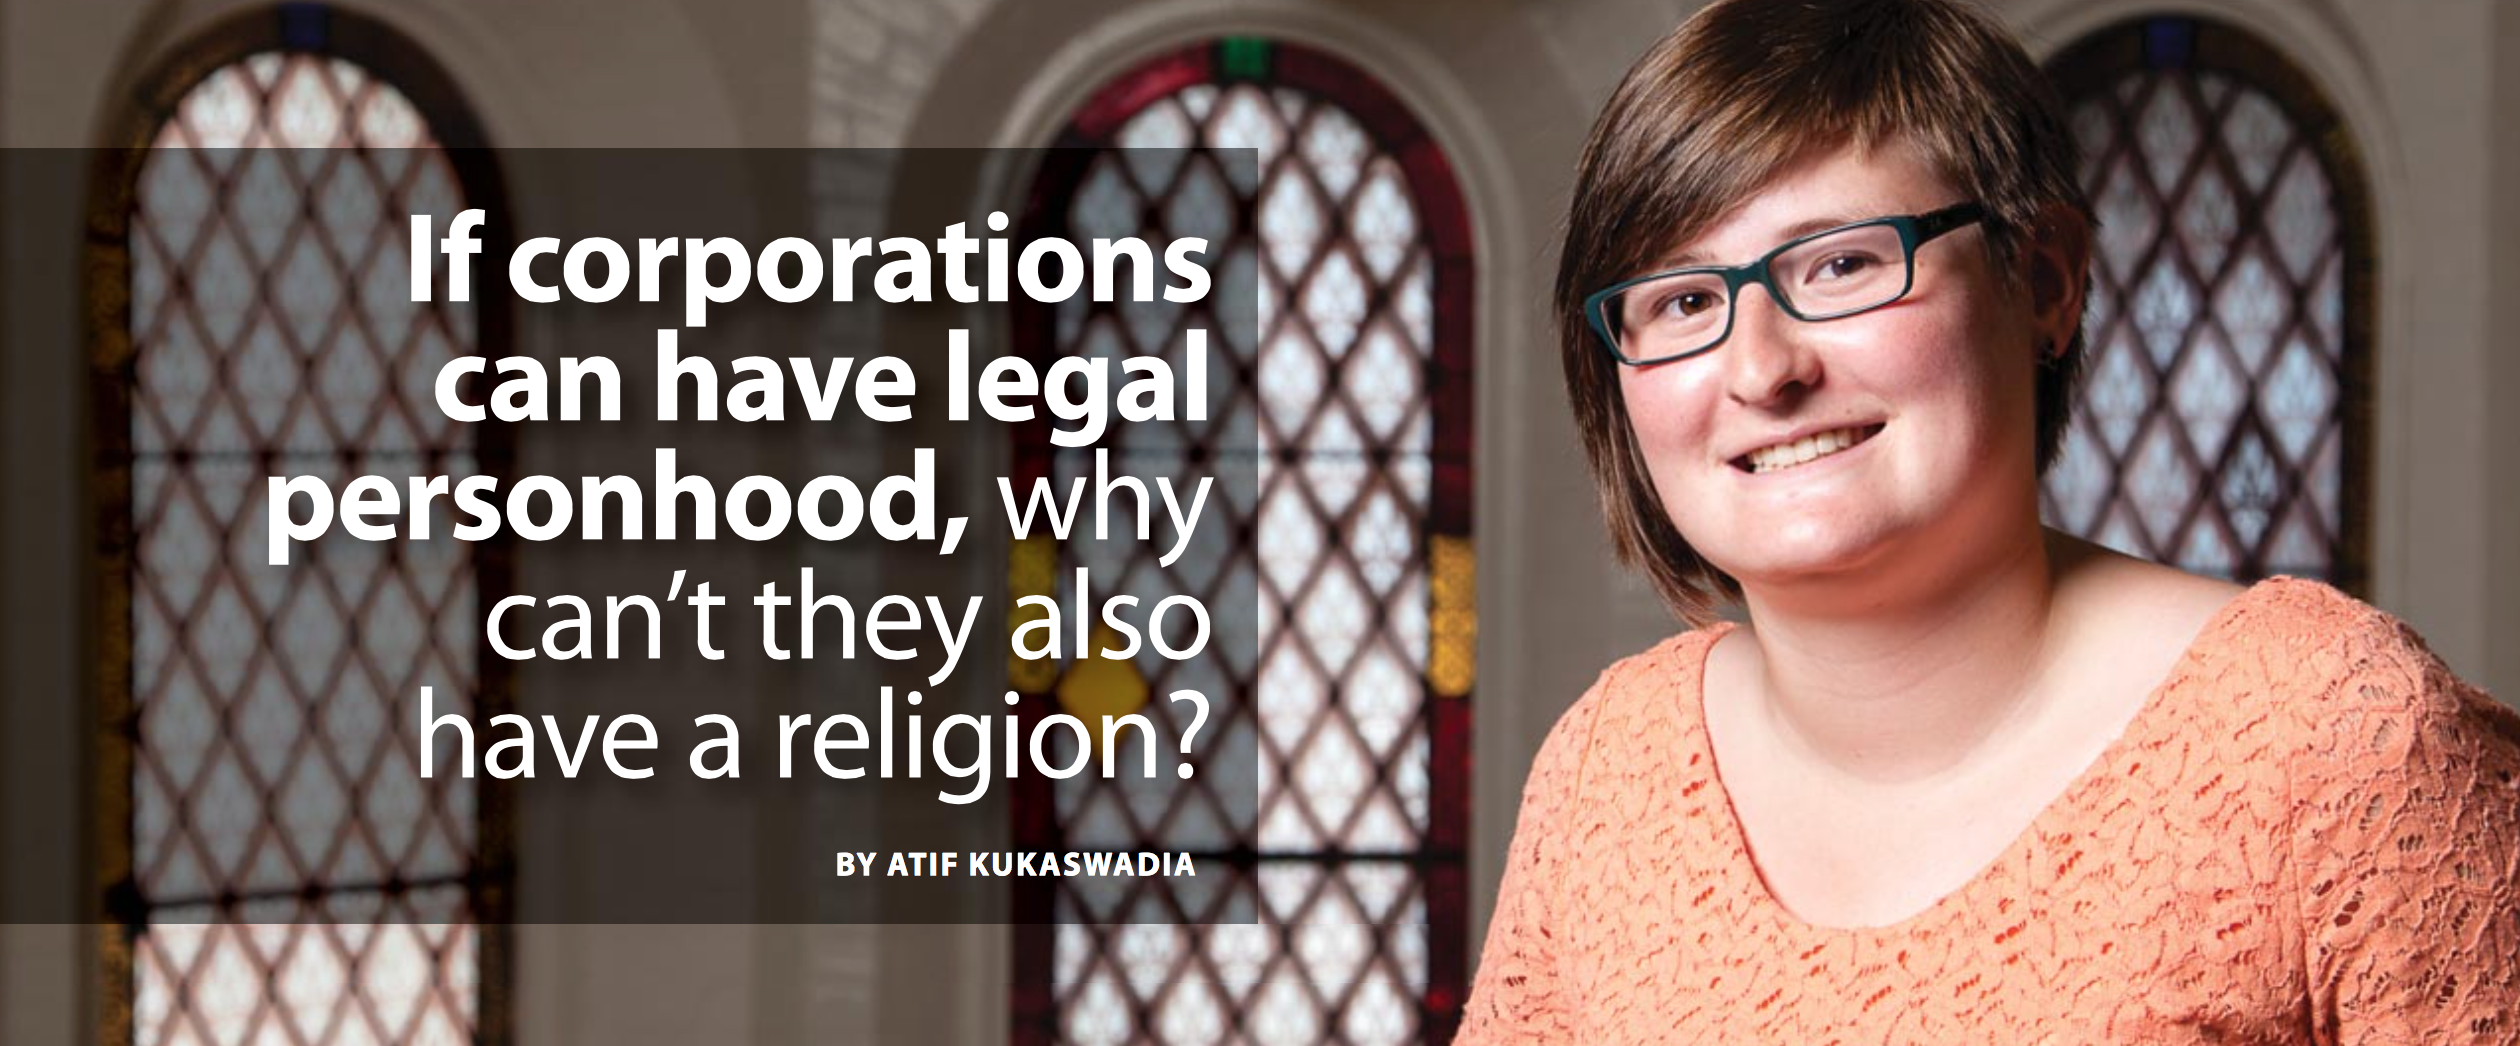 Michelle Rowland, also the recipient of Queen's Student Alumni Association Volunteer of Distinction Award, was recently profiled by former Gradifying writer Atif Kukaswadia in Queen's research magazine E-Affect on her summer research fellowship on religion and spirituality in the workplace (supervised by Dr. Richard Ascough, director of the School of Religion).